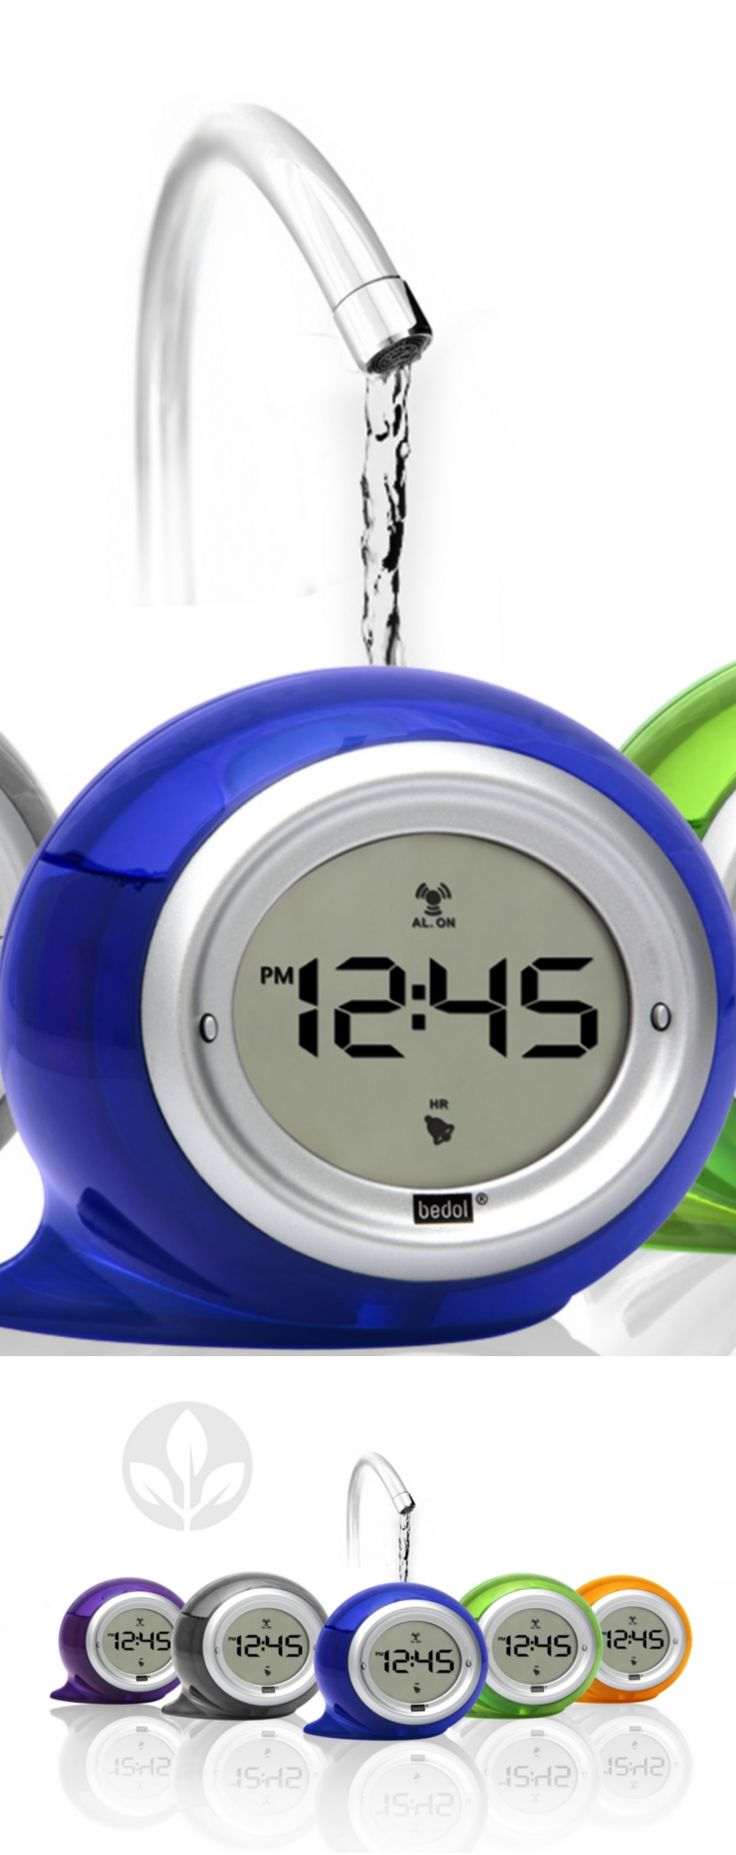 No power? No problem. Just add water! The Bedol Squirt Water Alarm Clock runs on water. No batteries, AC power or solar power are needed. Simply fill the unit with tap water and a small natural reaction between two metallic plates inside the unit generates enough electricity to keep its LCD display running indefinitely. The $26 unit comes in blueberry blue, kiwi green, tangerine orange, plum purple or smoke gray. CLICK THE PIC for more information.